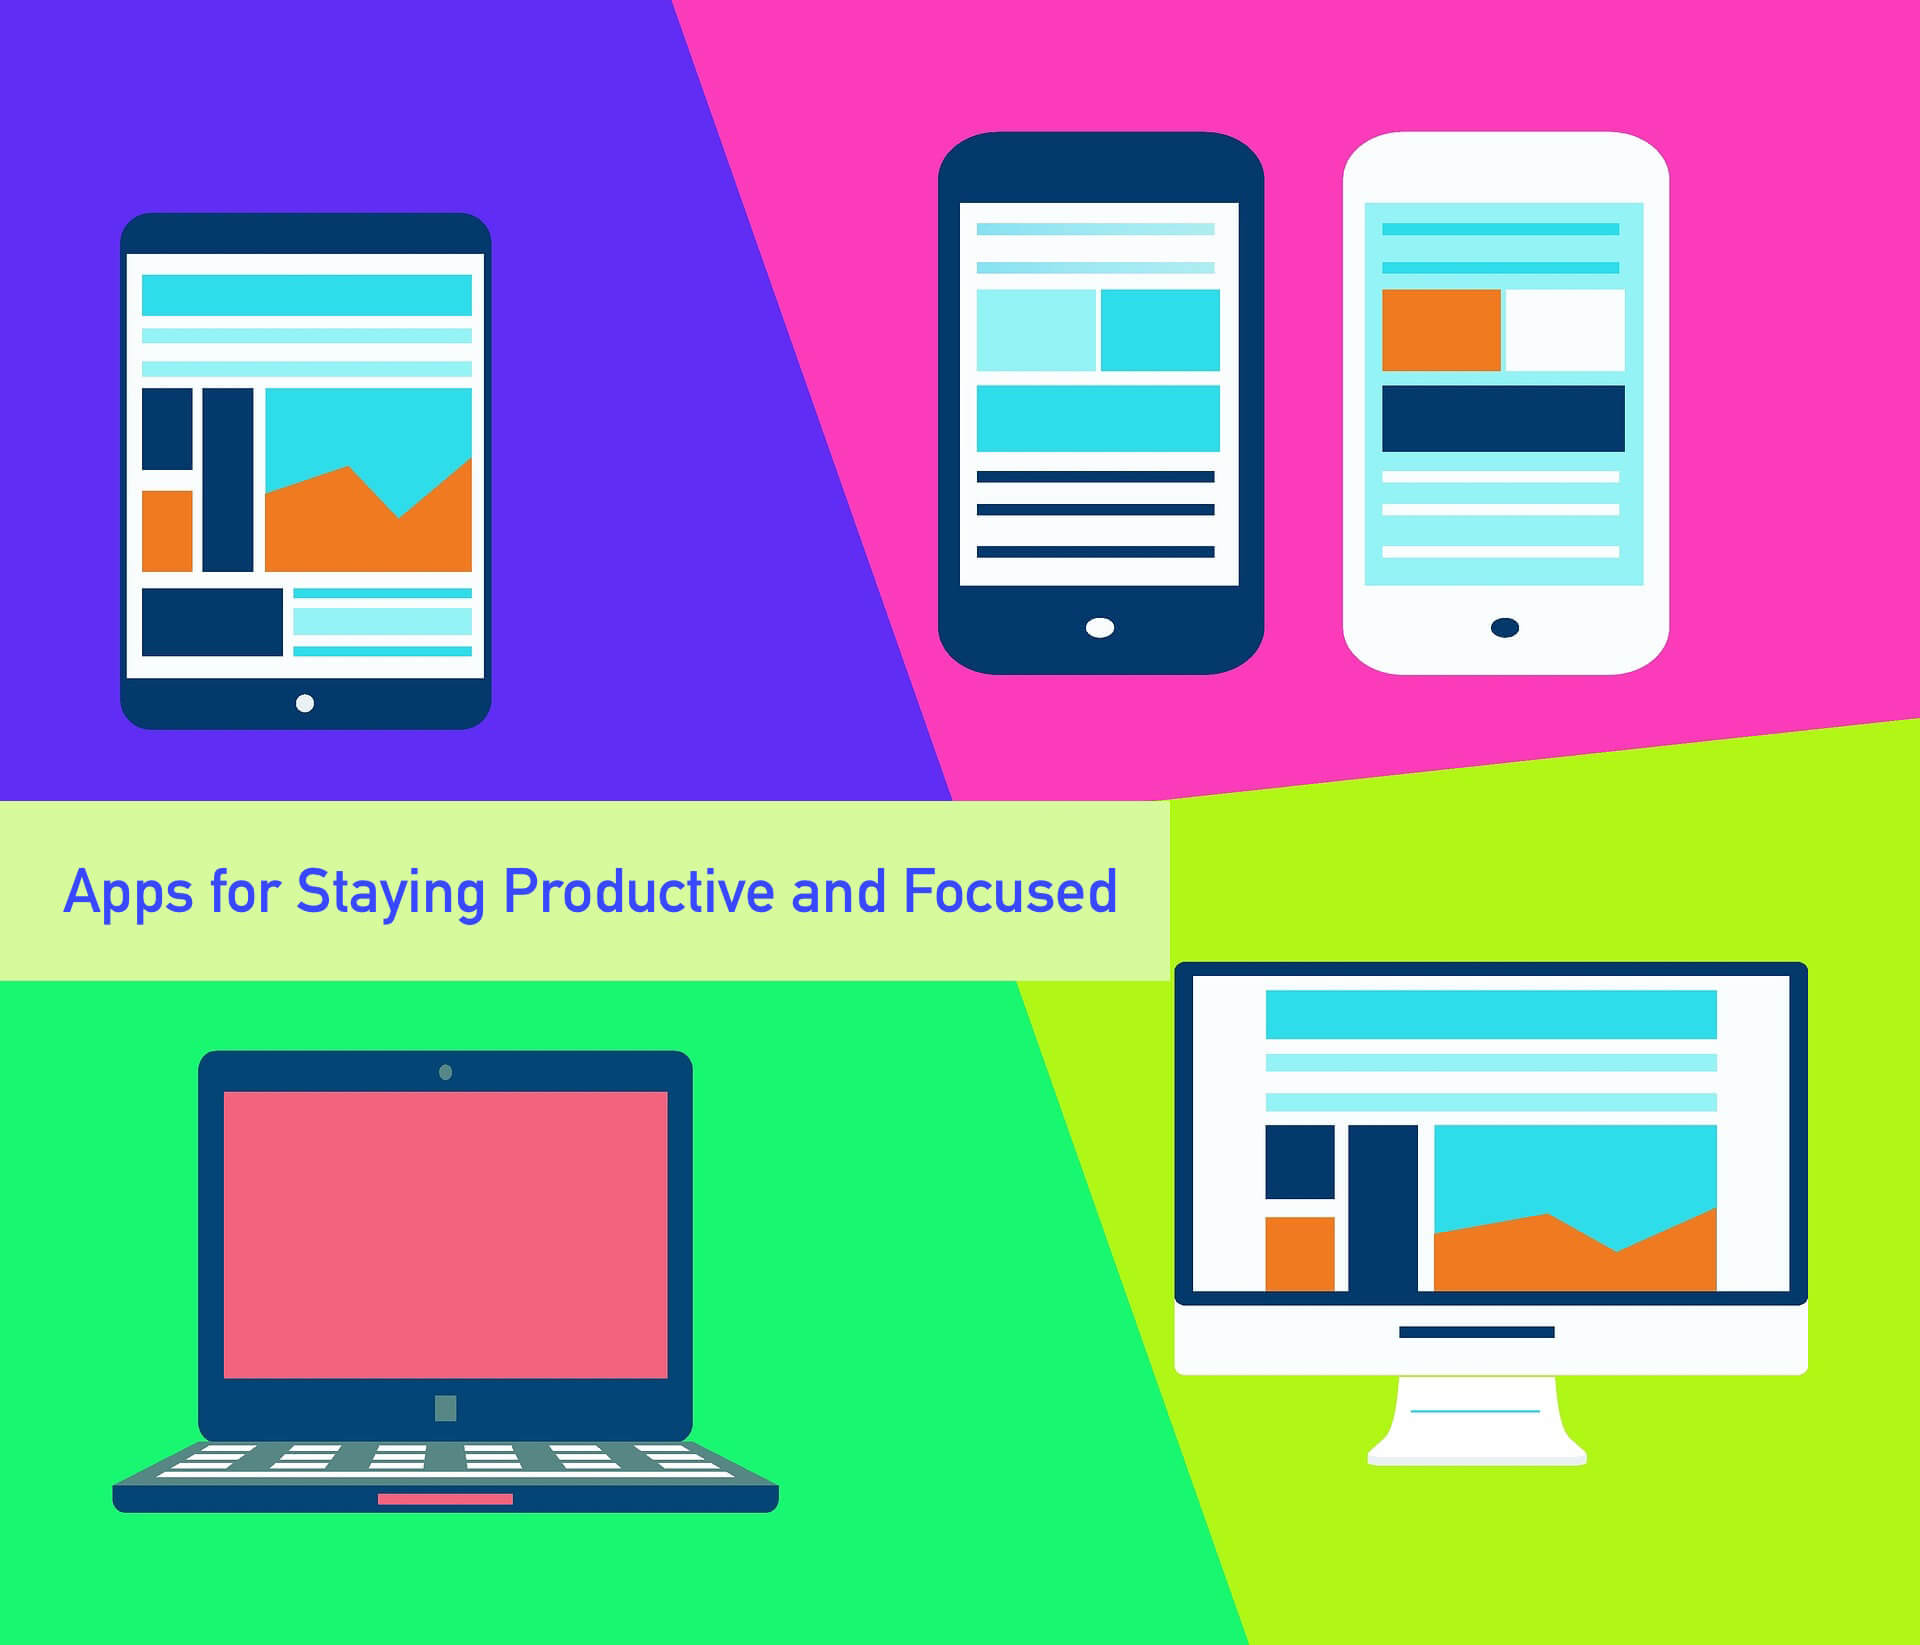 Apps for Staying Productive and Focused